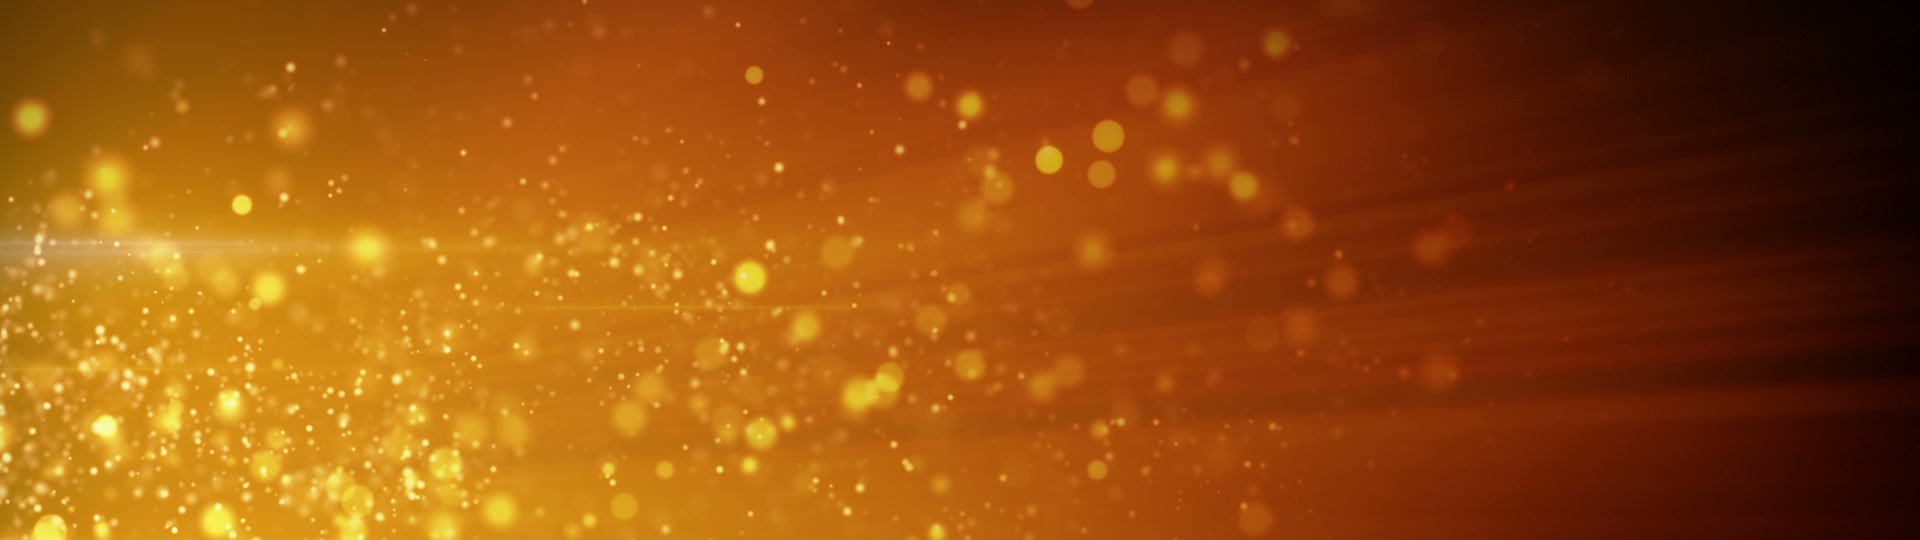 Springing gold particles in light beams loop | springing gold particles in light beams. computer generated seamless loop abstract motion background  - ID:20097